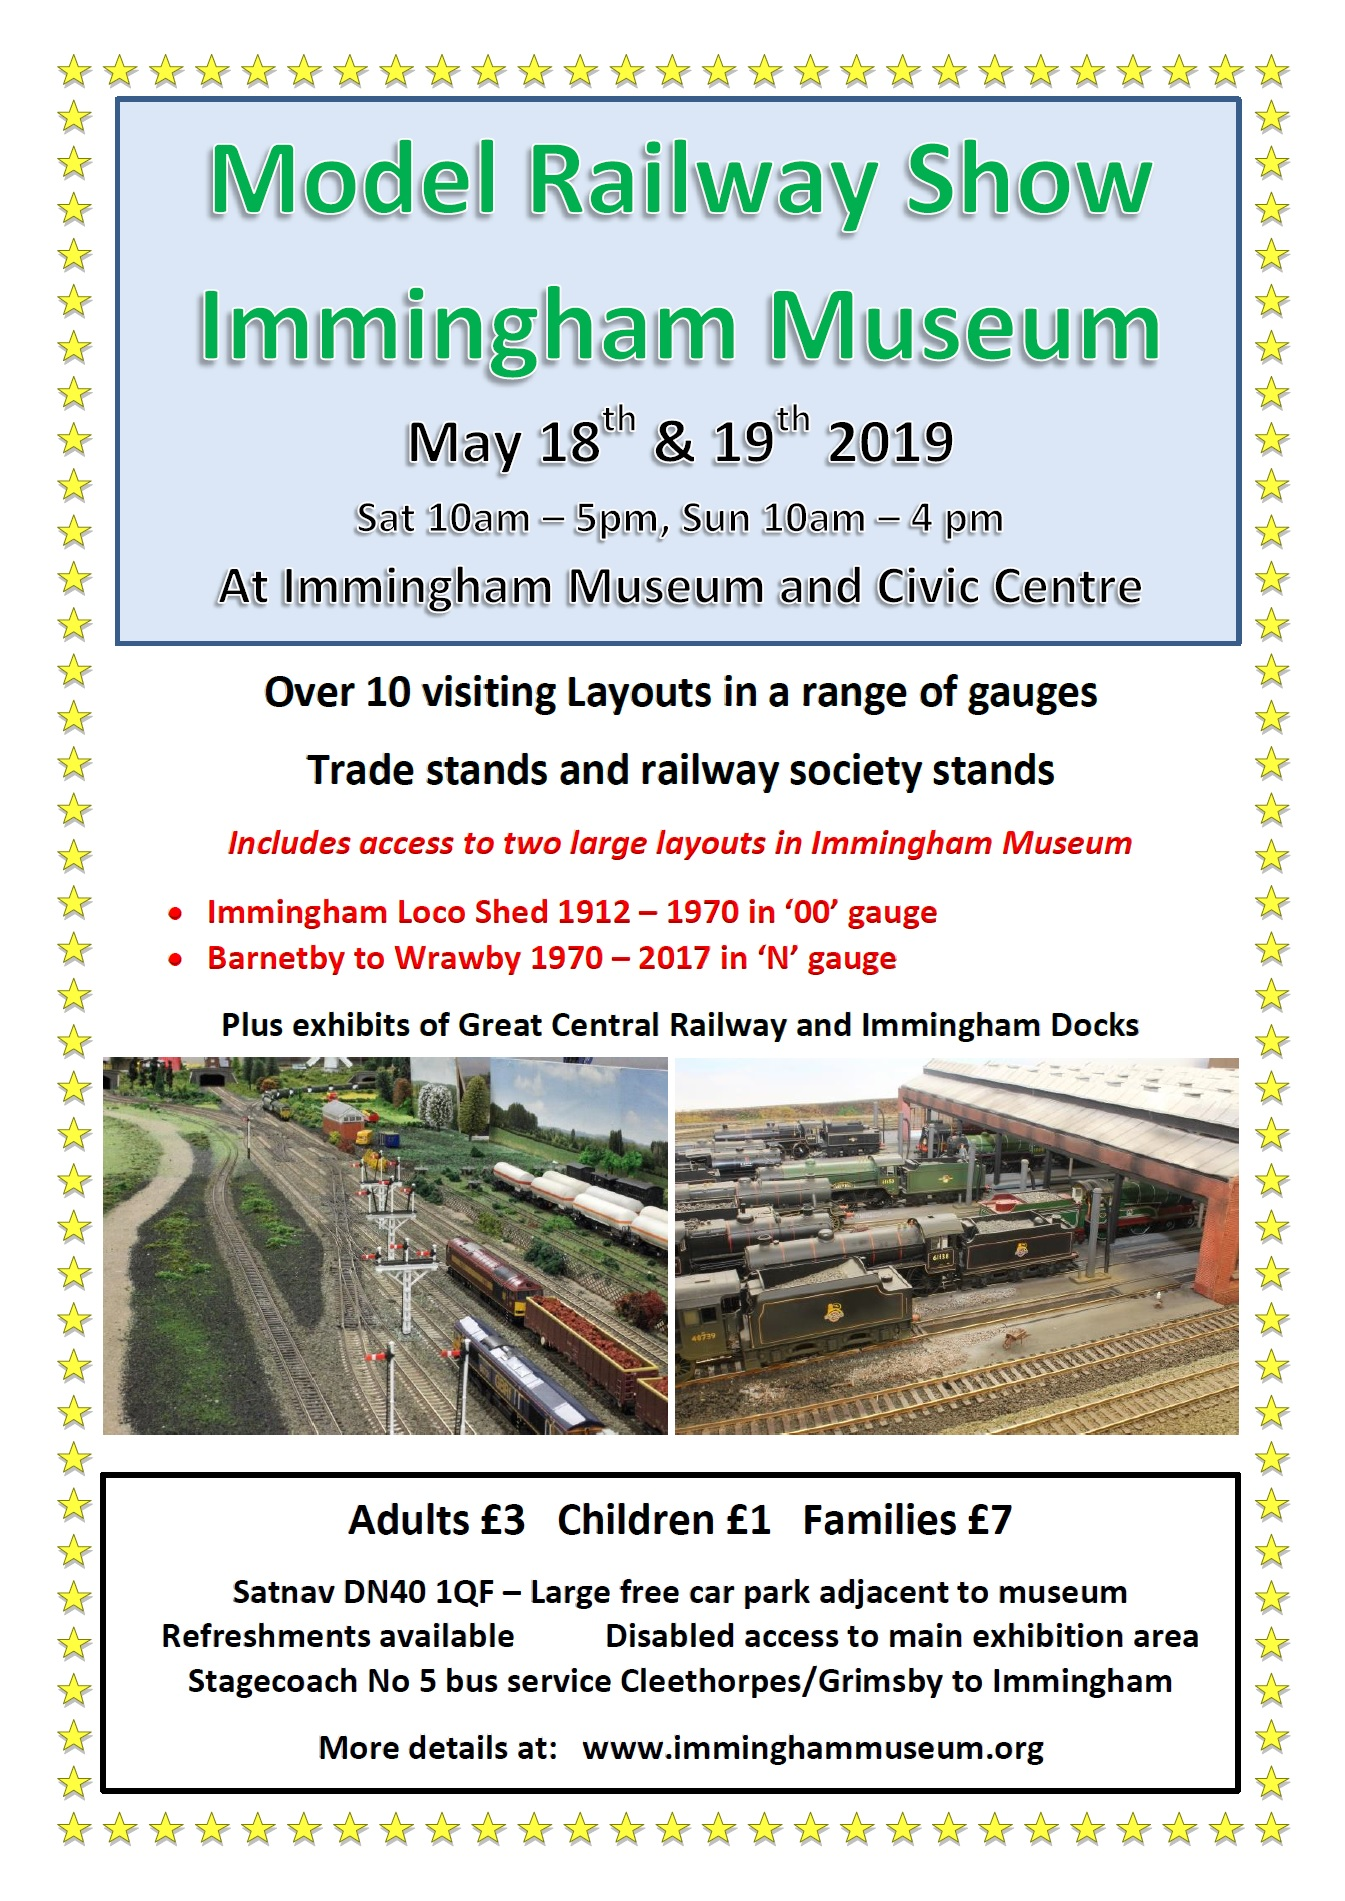 Imm_Model_Railway_2019_Poster